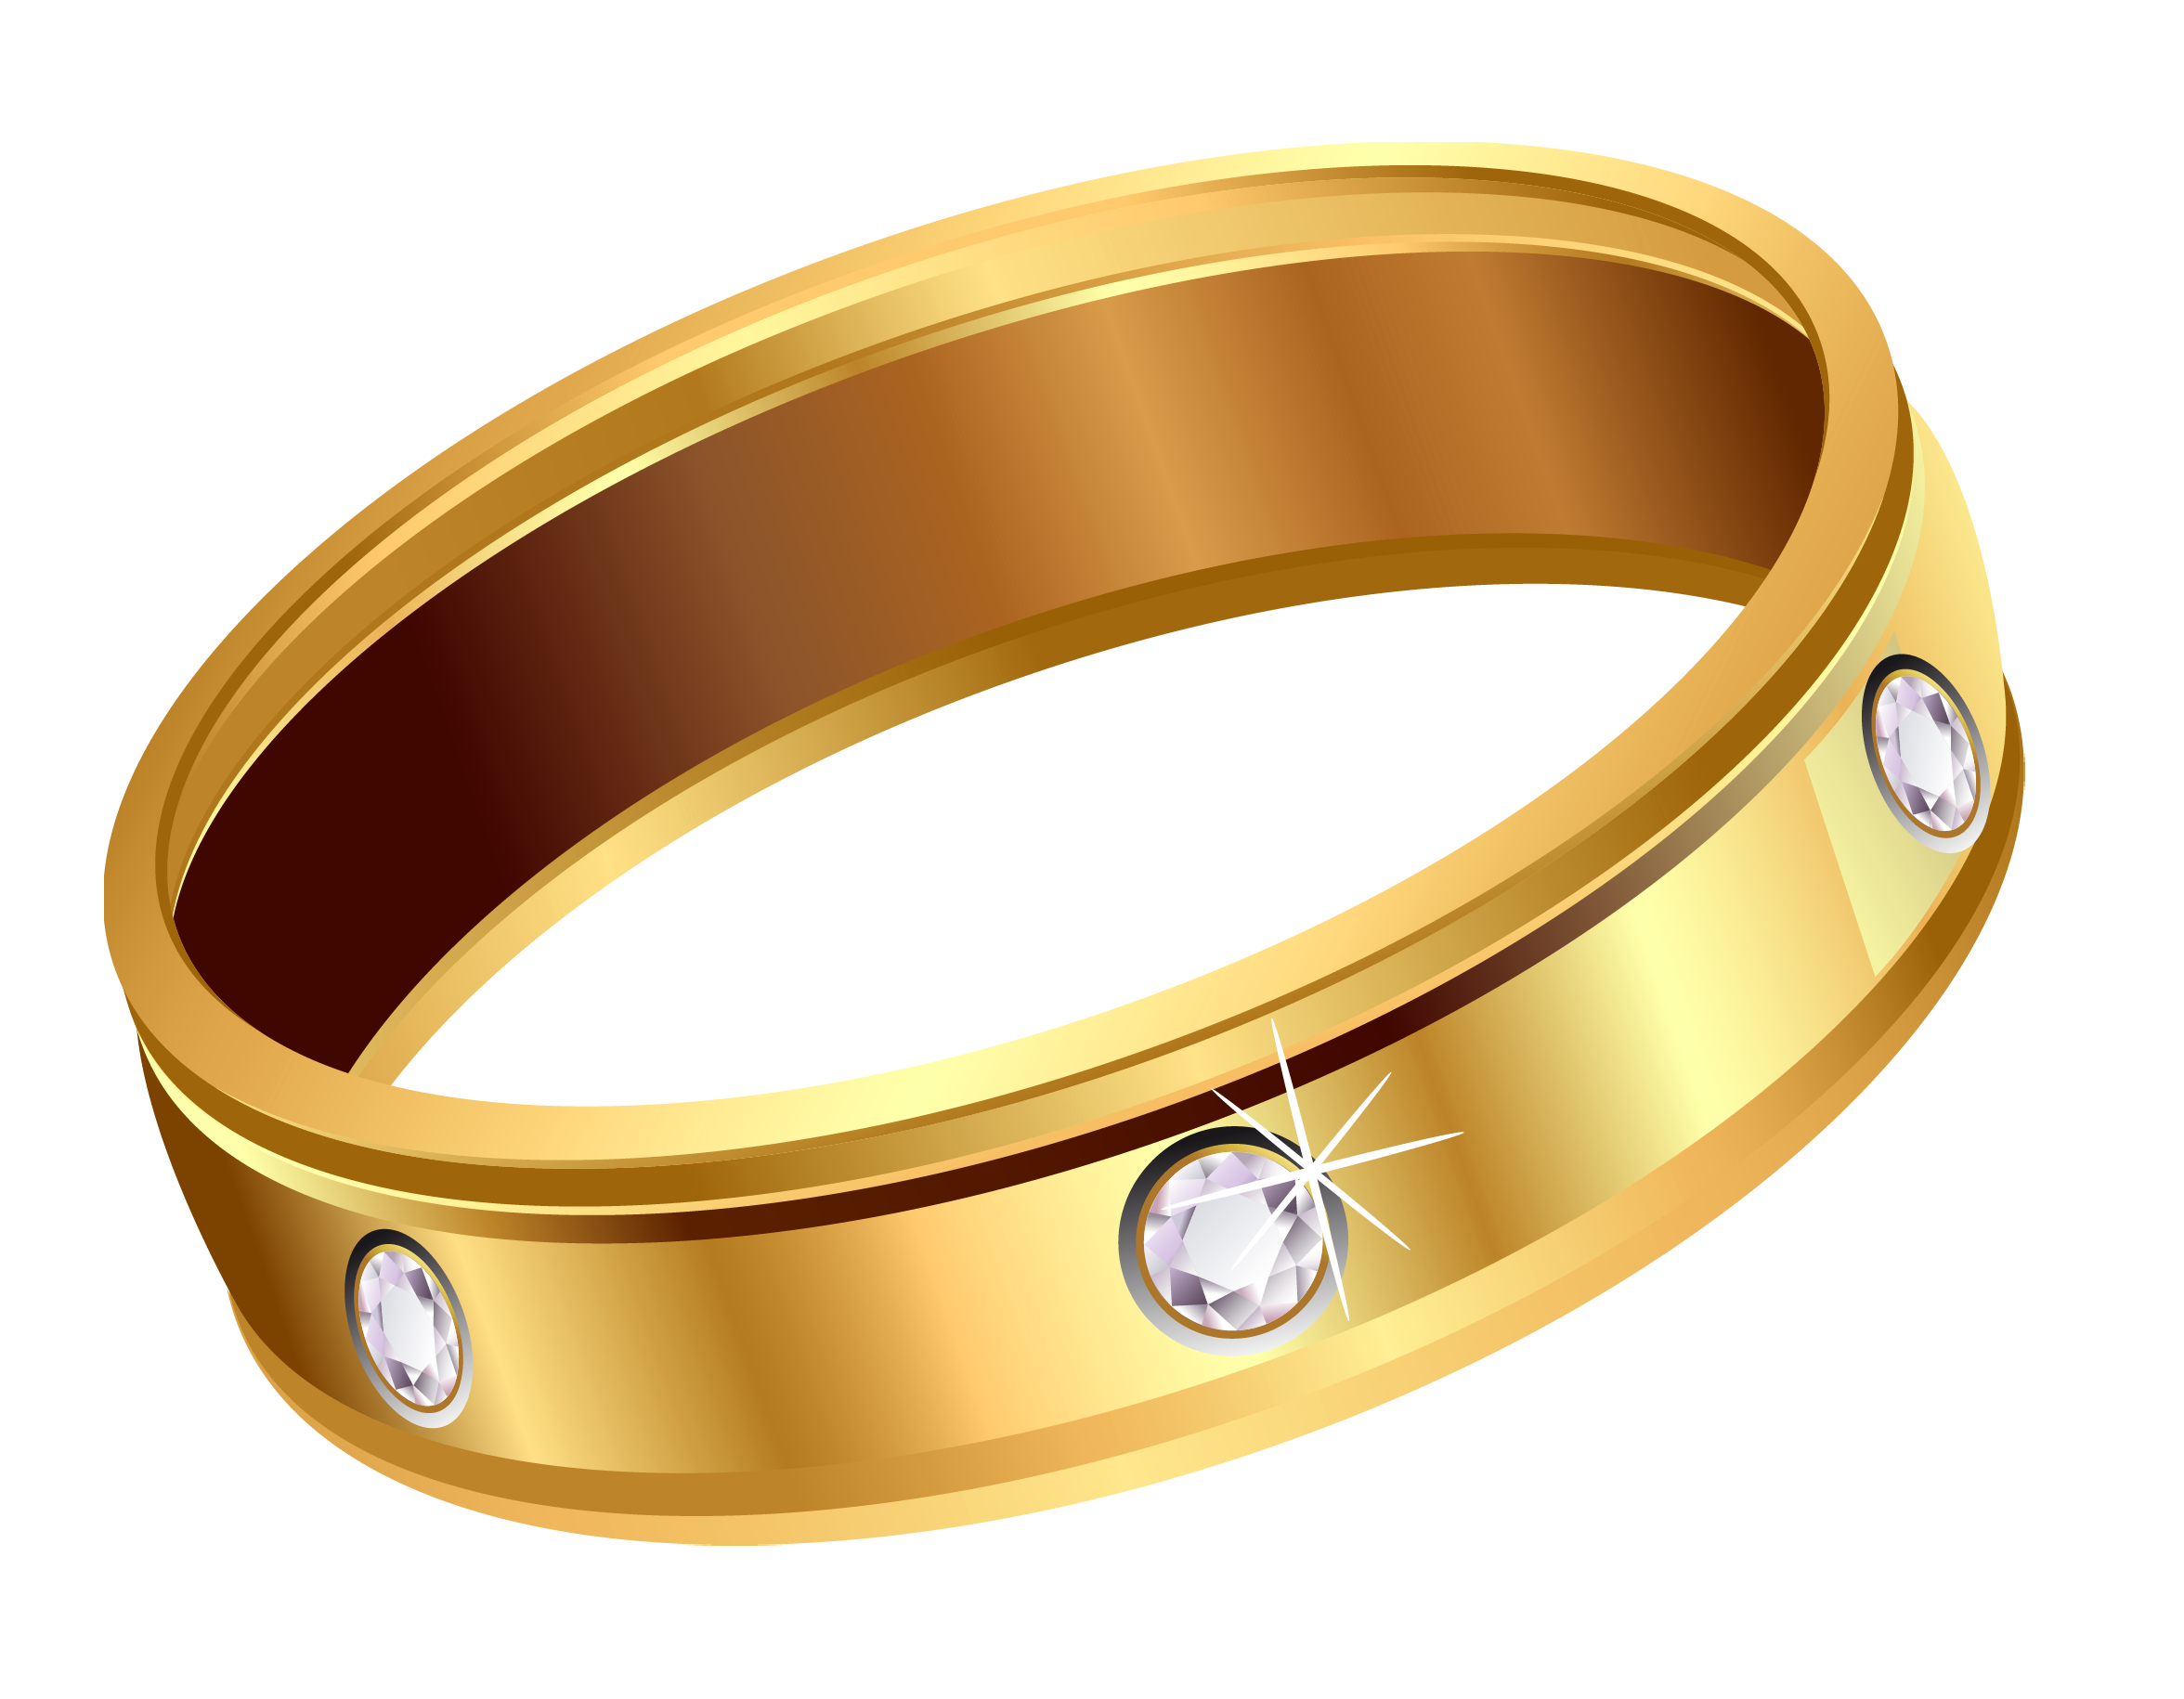 Free download of Jewelry Transparent PNG File